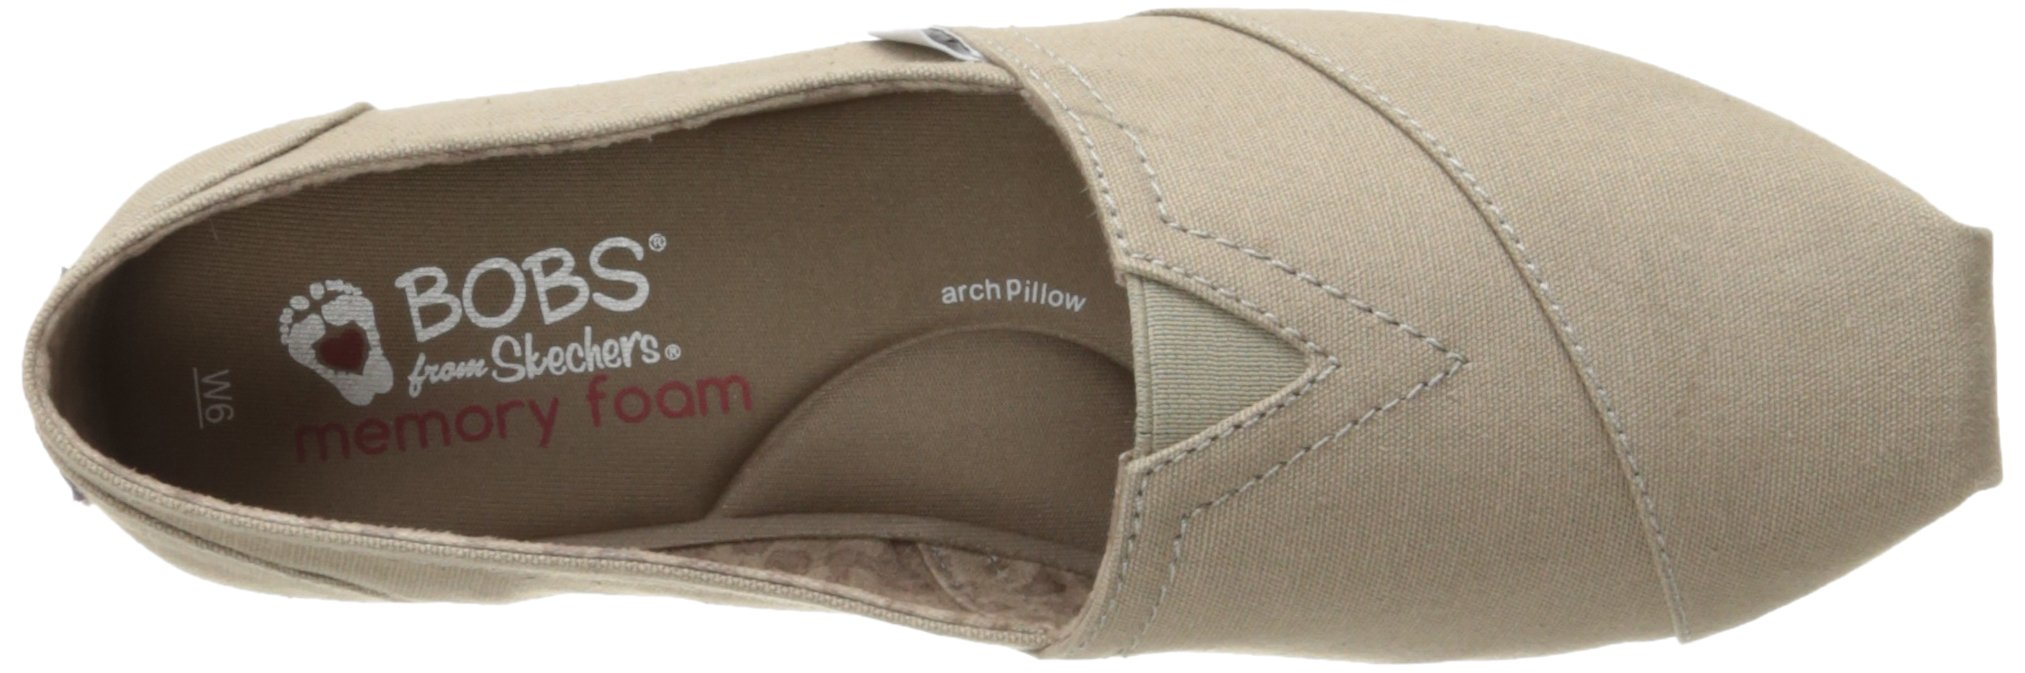 Skechers BOBS Women's Plush-Peace and Love Flat, Taupe, 8.5 W US by Skechers (Image #8)